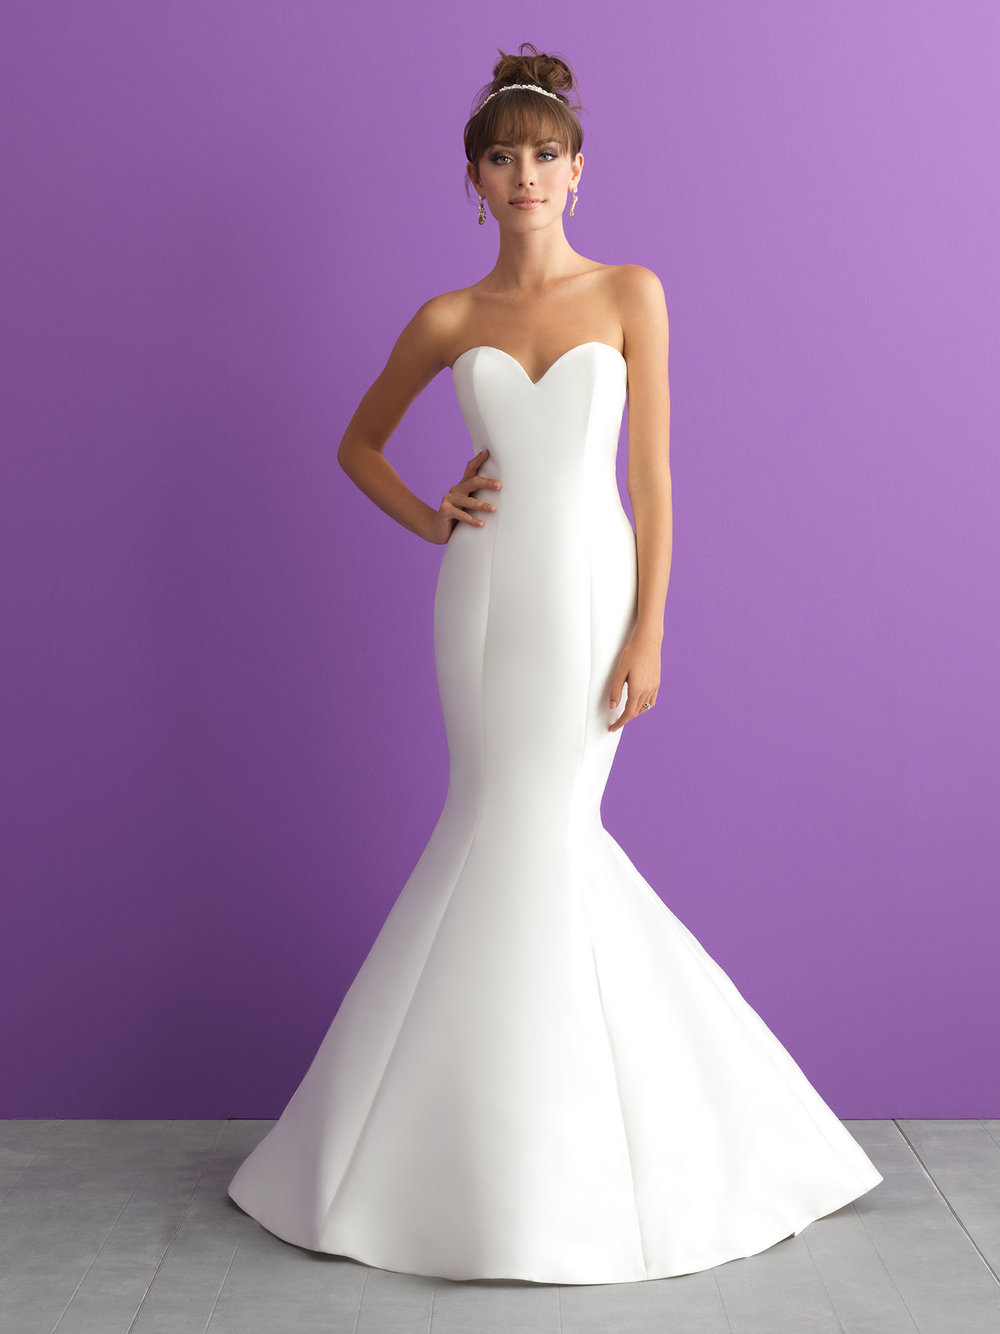 Style 3000 - This strapless, classic gown is elevated by a chic detachable train.